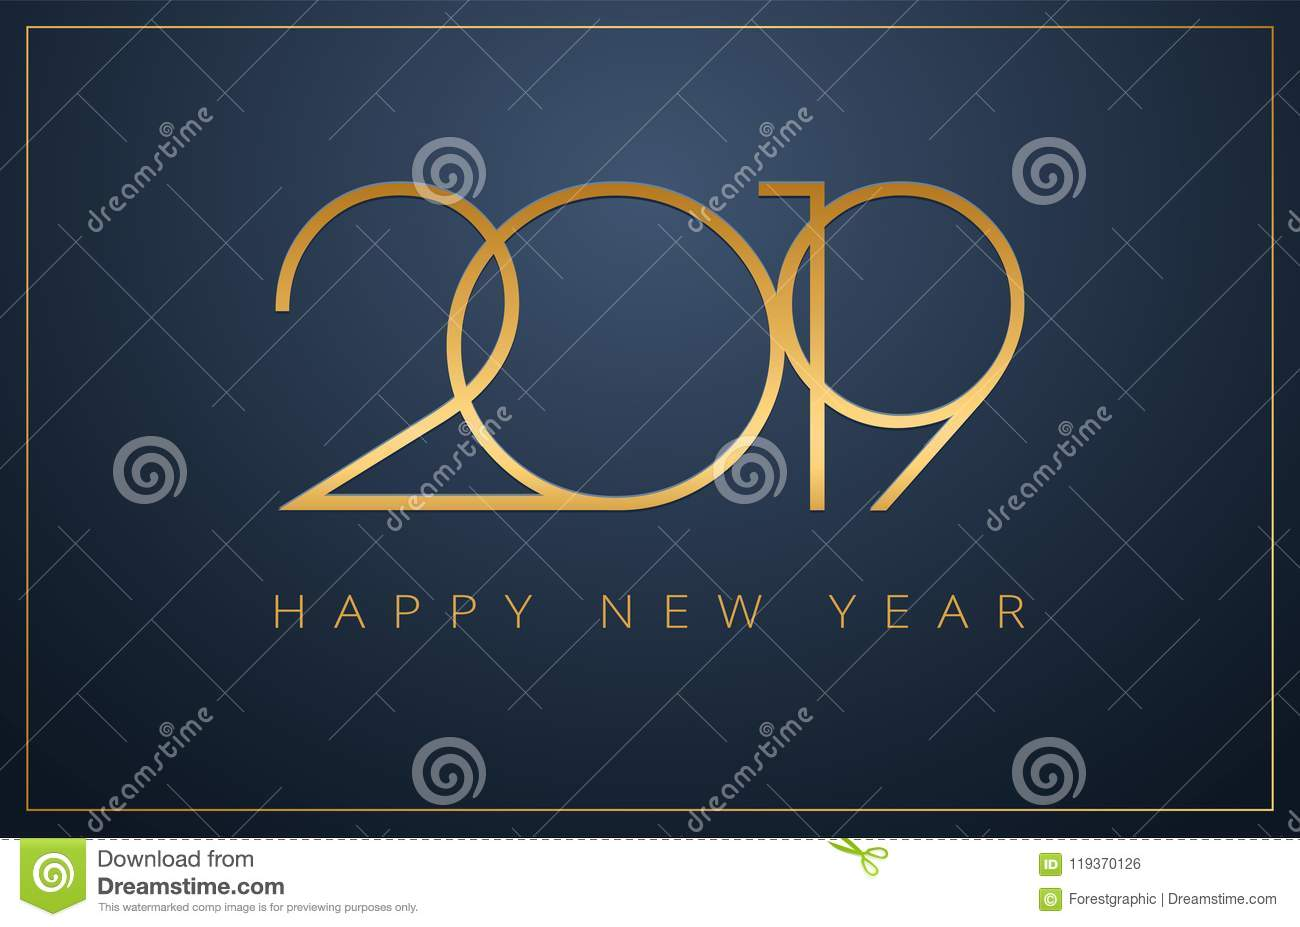 Classy 2019 Happy New Year background. Golden design for Christmas and New Year 2019 greeting cards vector